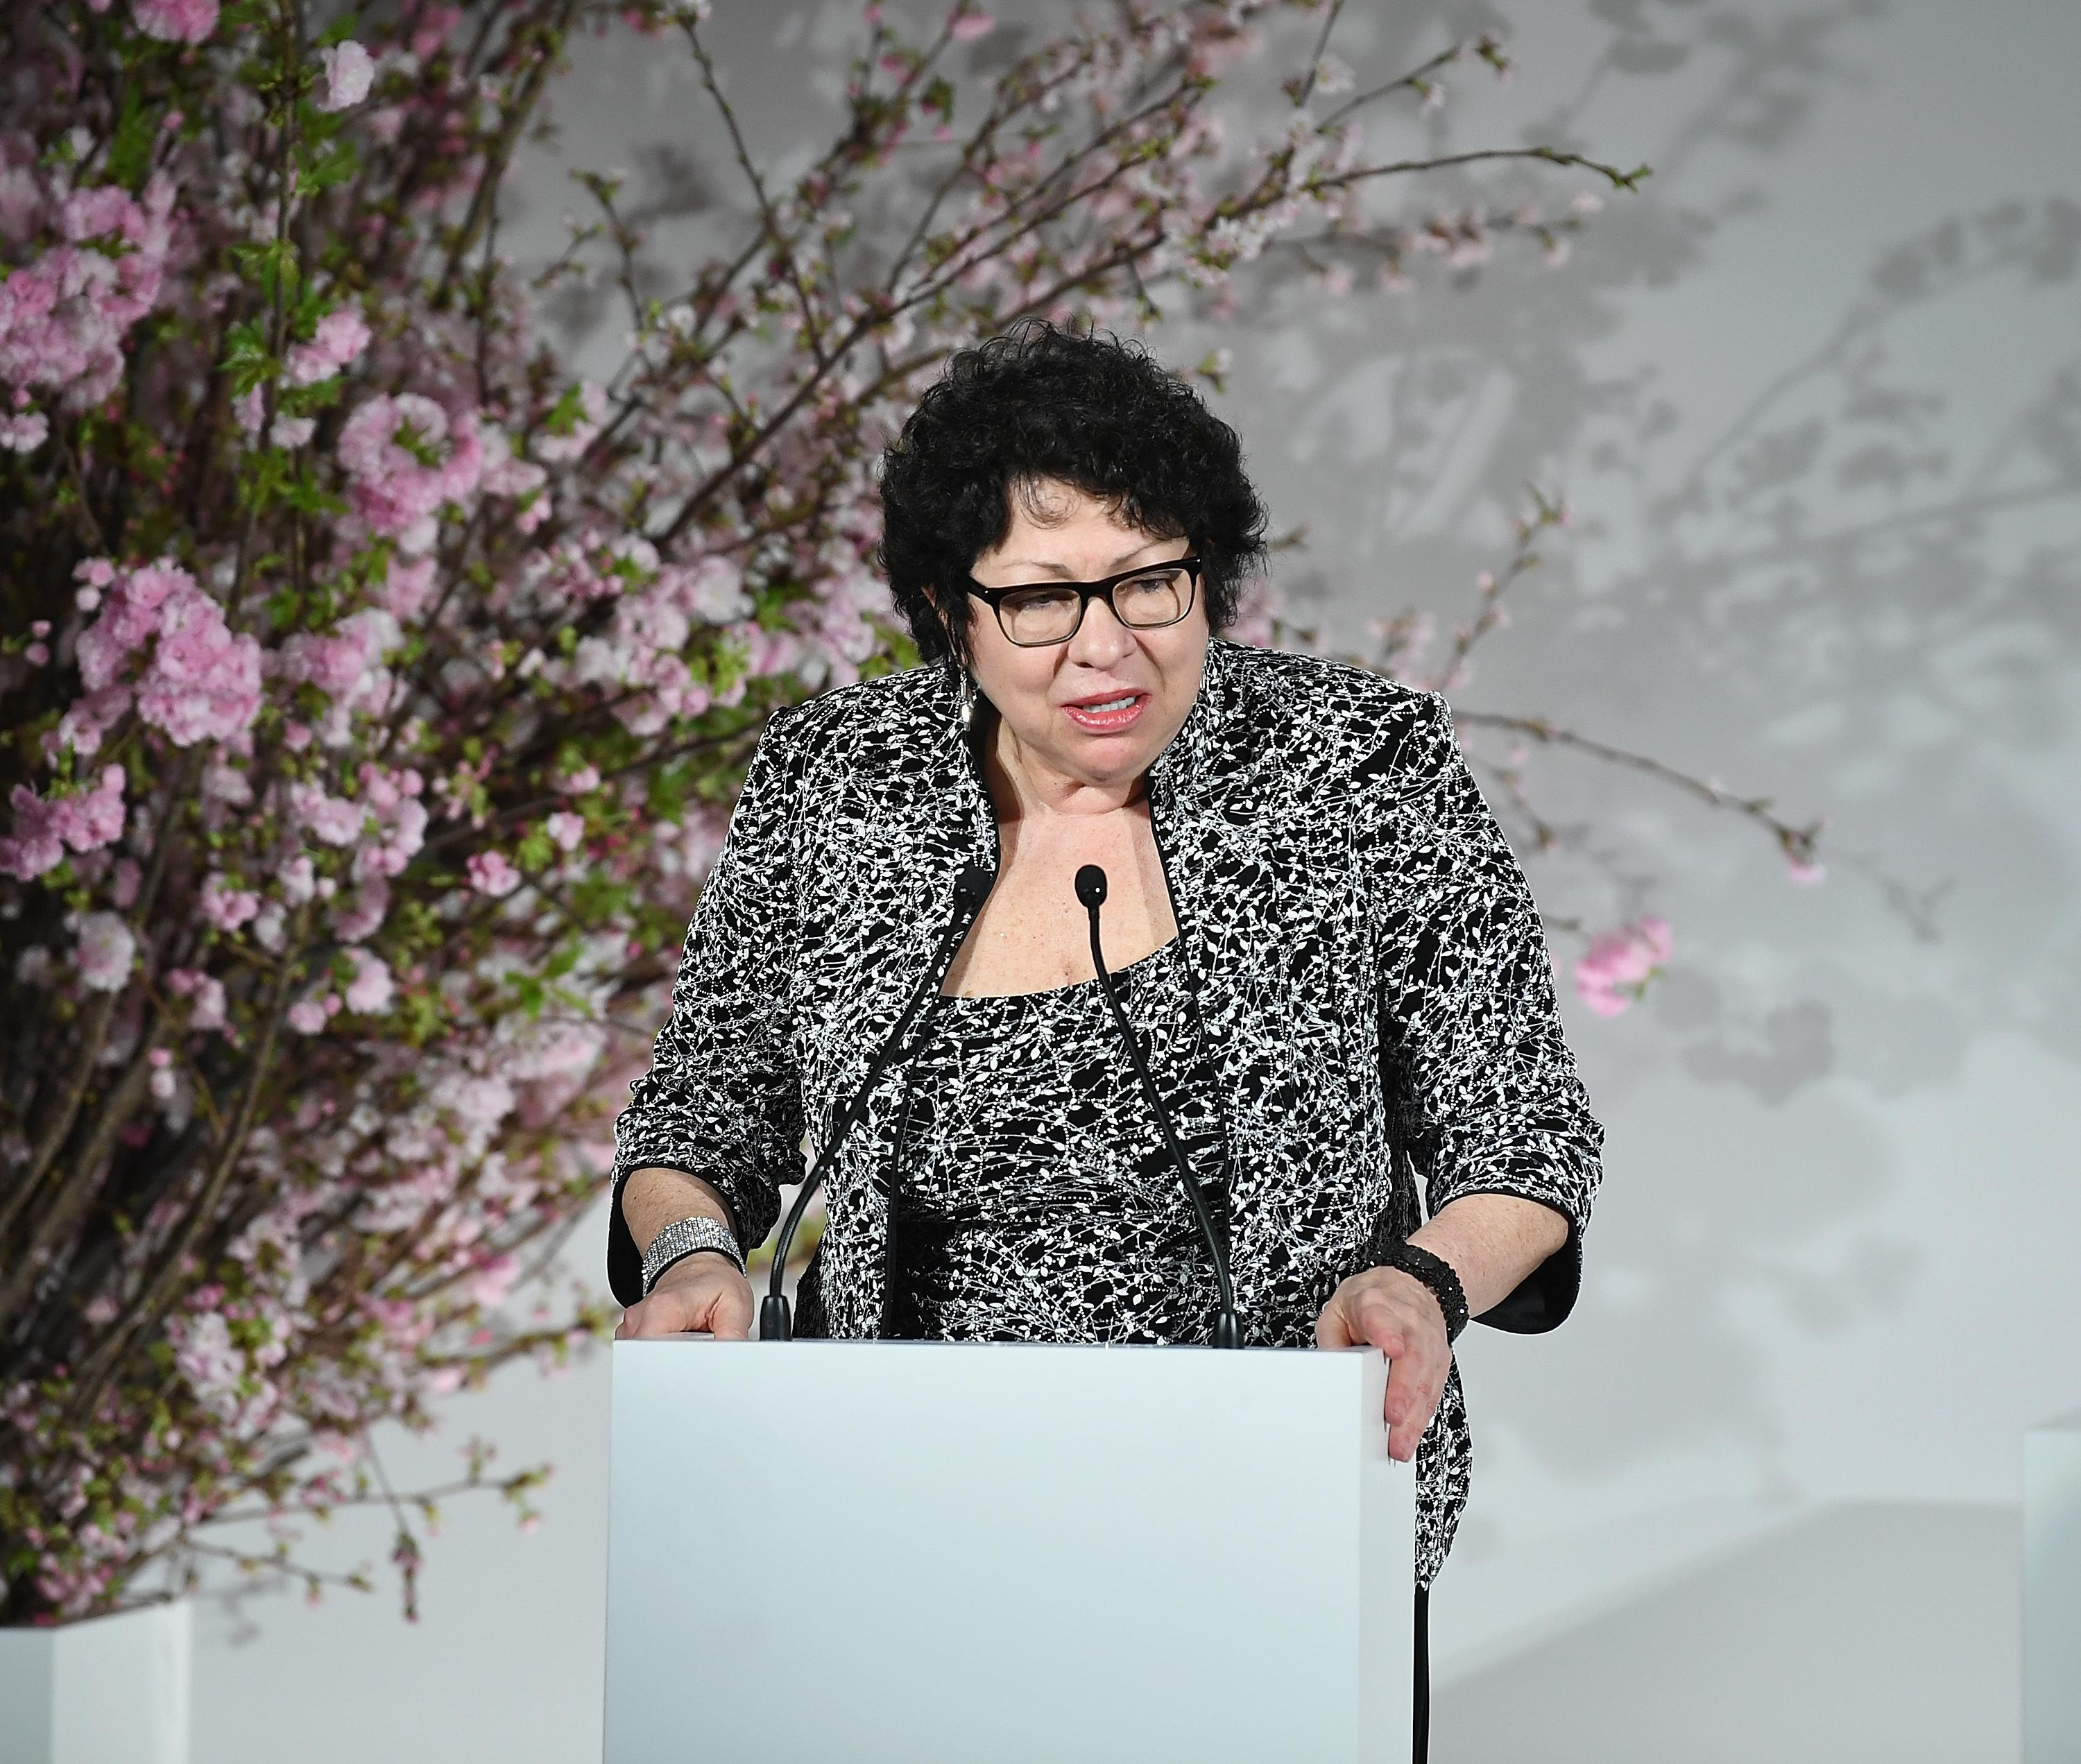 Sotomayor speaking at the UN.